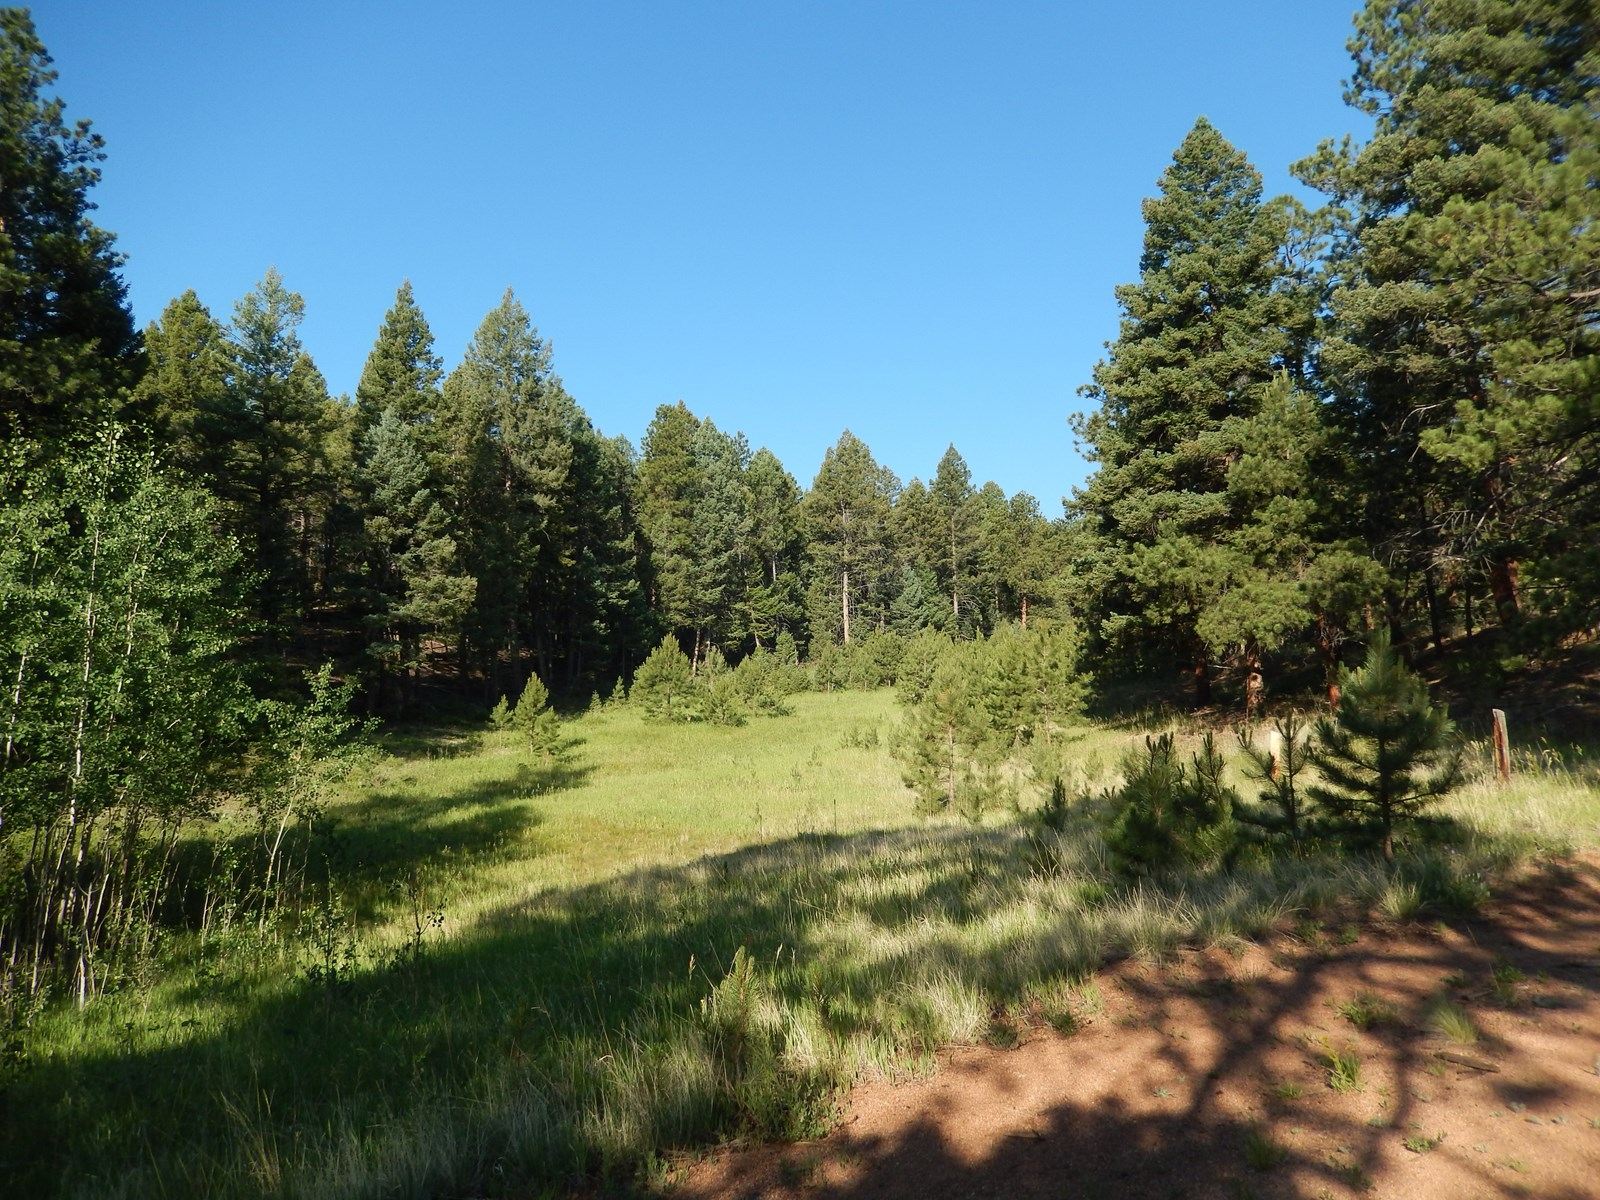 Pike National Forest with 3 Ponds  Woodland Park CO 39 Acres